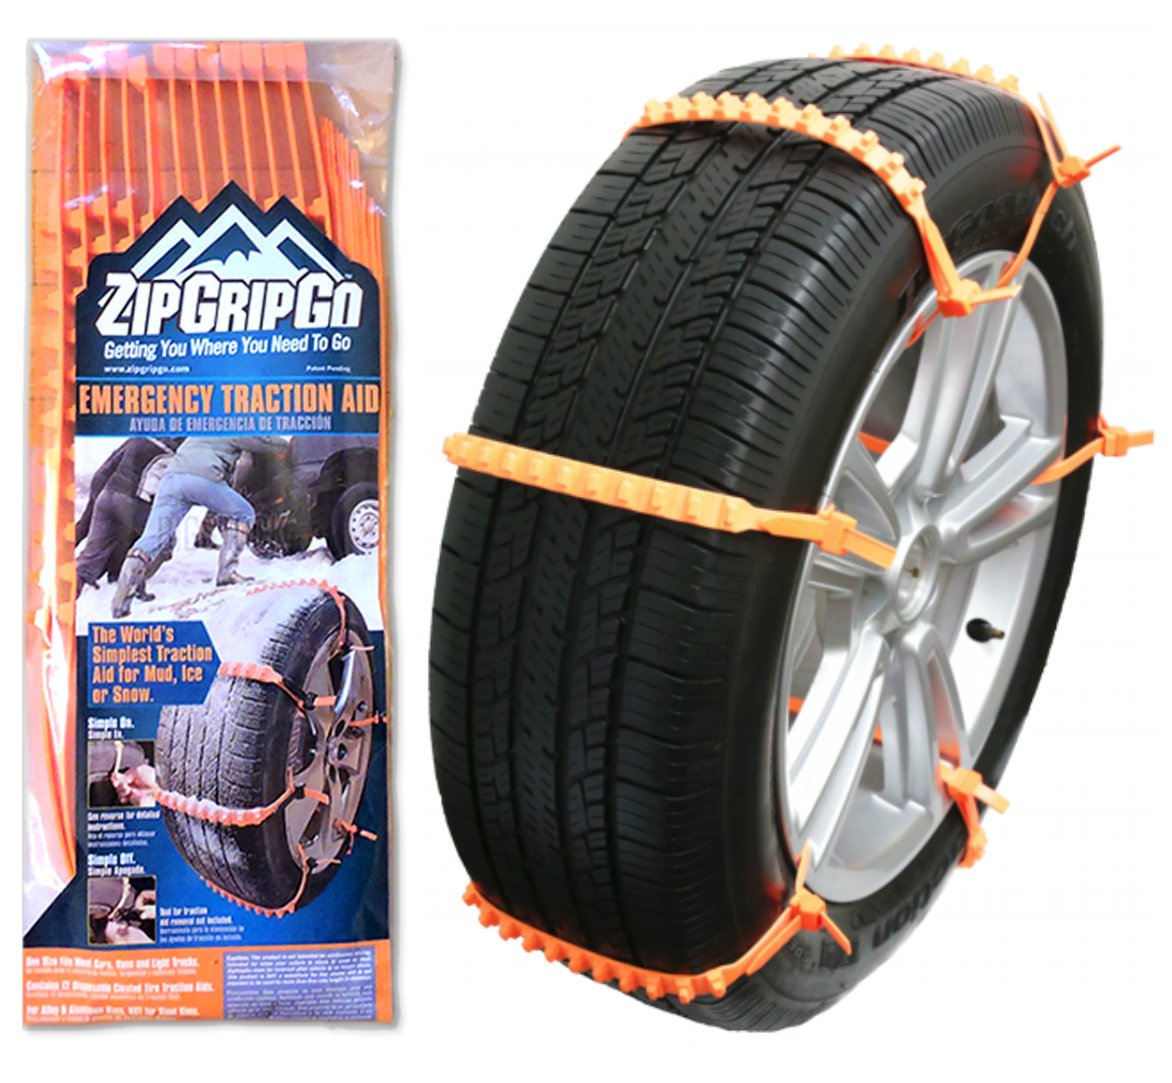 Amazon.com: Zip Grip Go Cleated Tire Traction Device for Cars, Vans ...